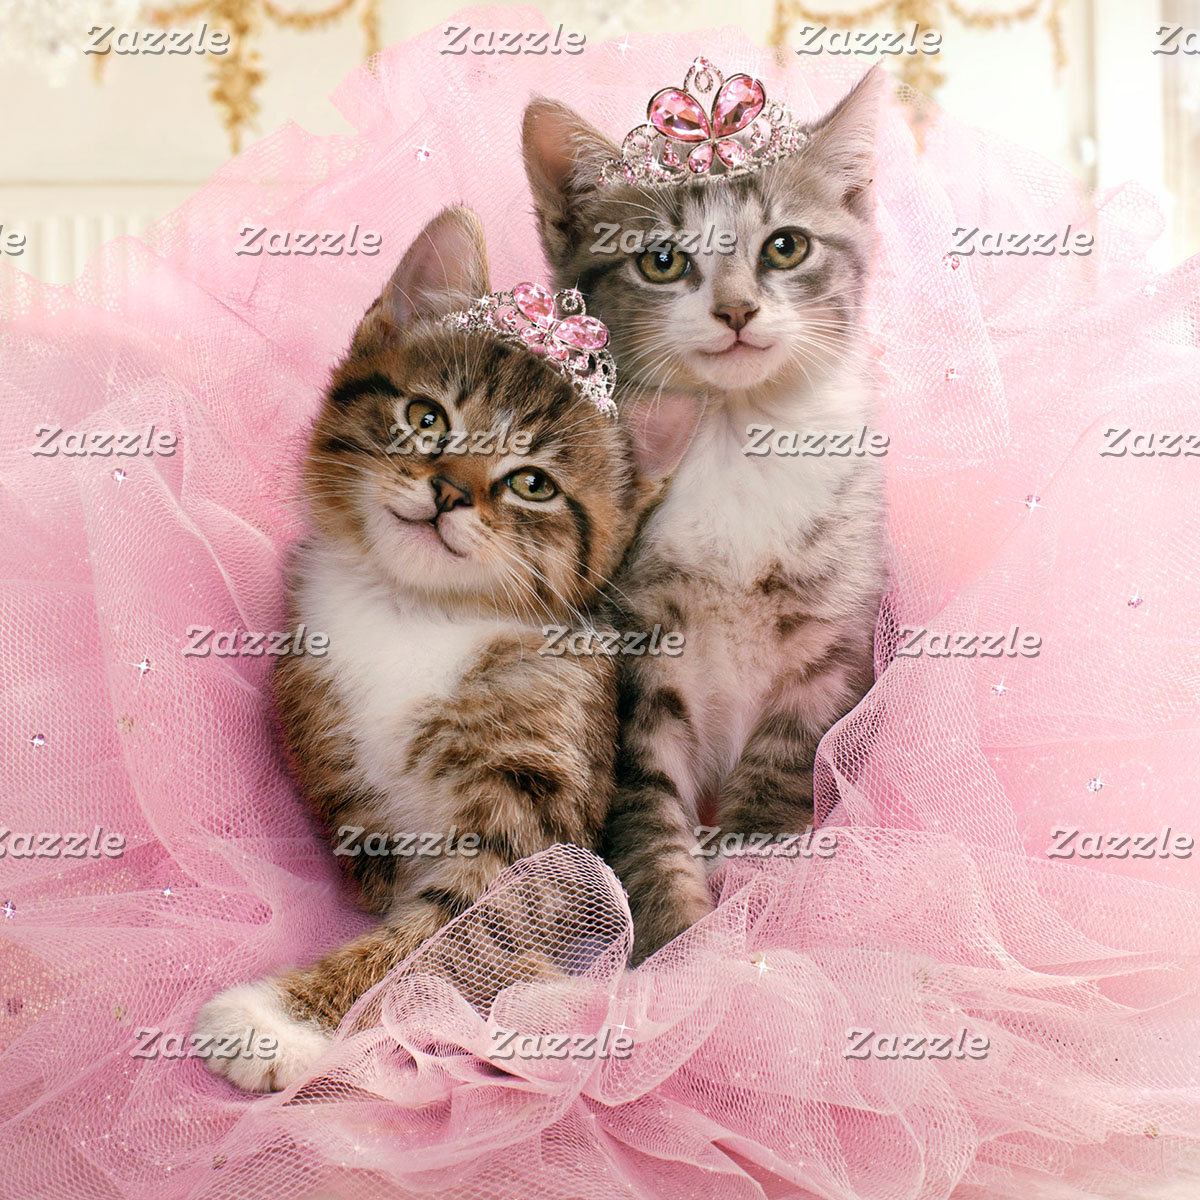 Sweet Kittens in Tiaras and Pink Sparkly Tutu